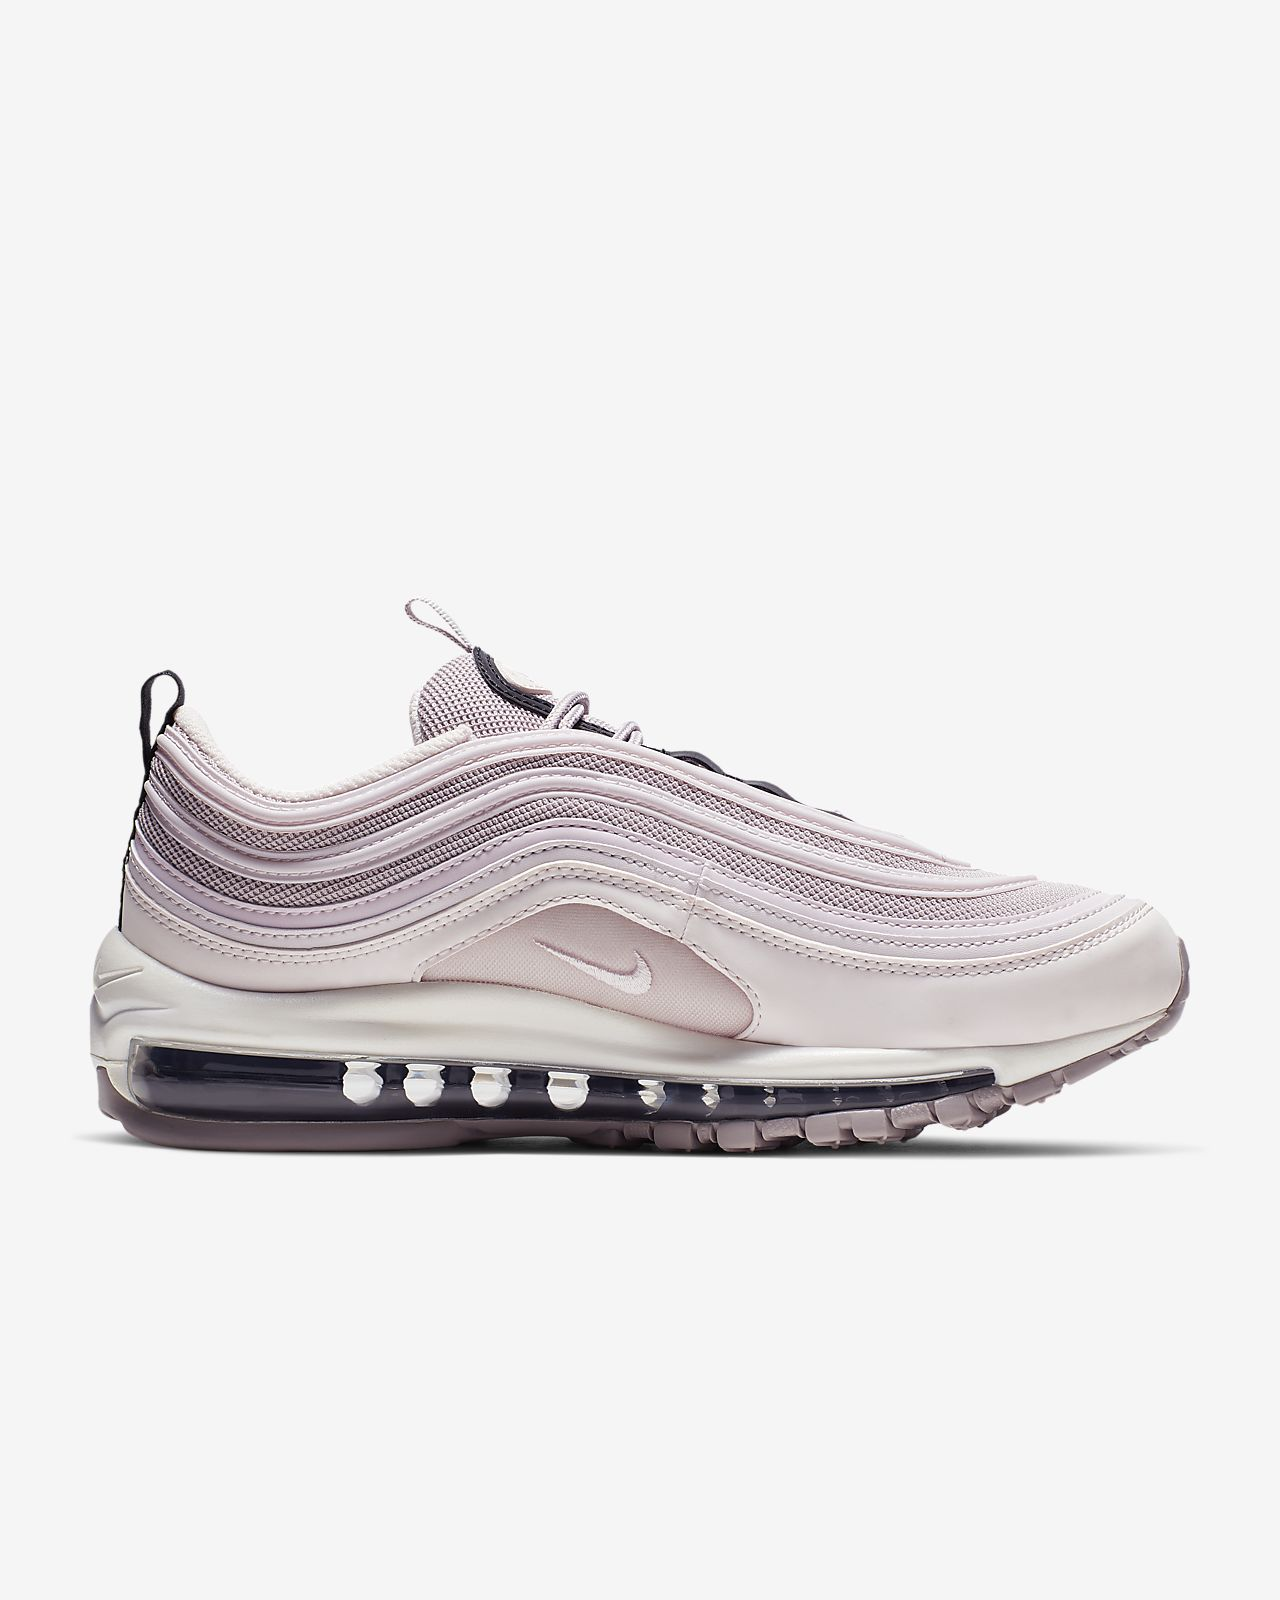 official photos bd1b8 278dc ... Nike Air Max 97 Women s Shoe